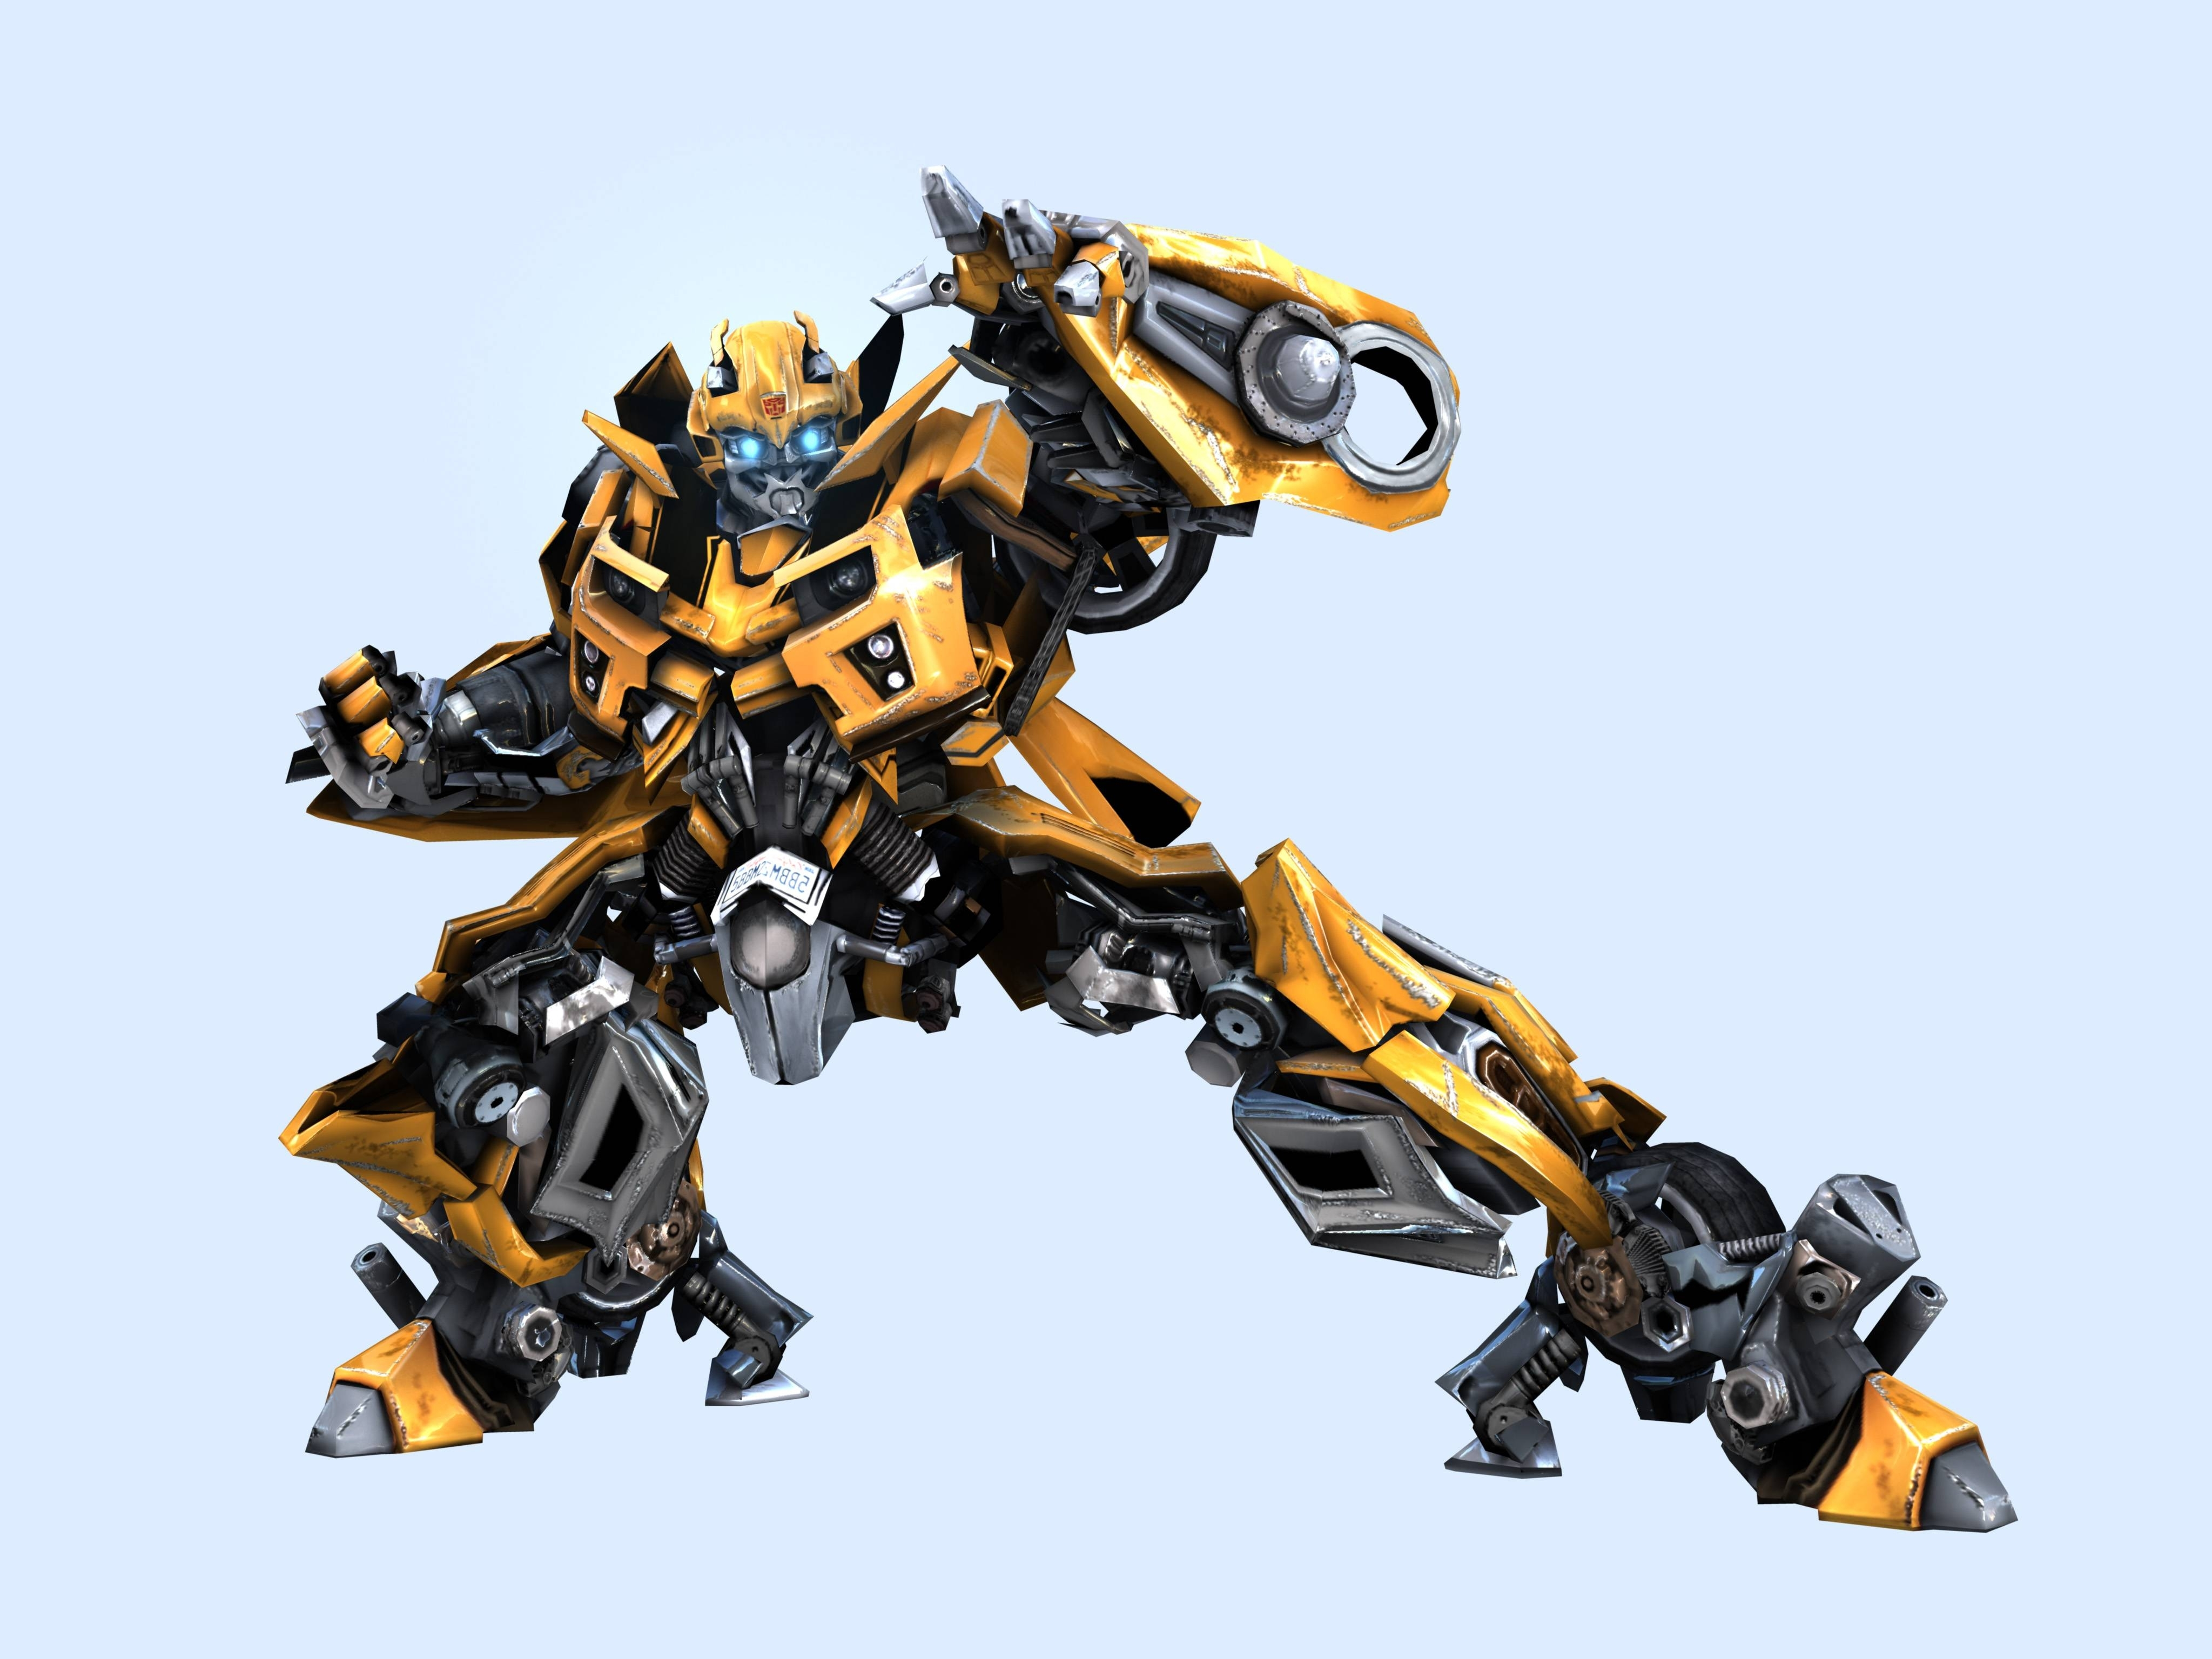 10 Latest Transformer 2 Bumble Bee FULL HD 1920×1080 For PC Background